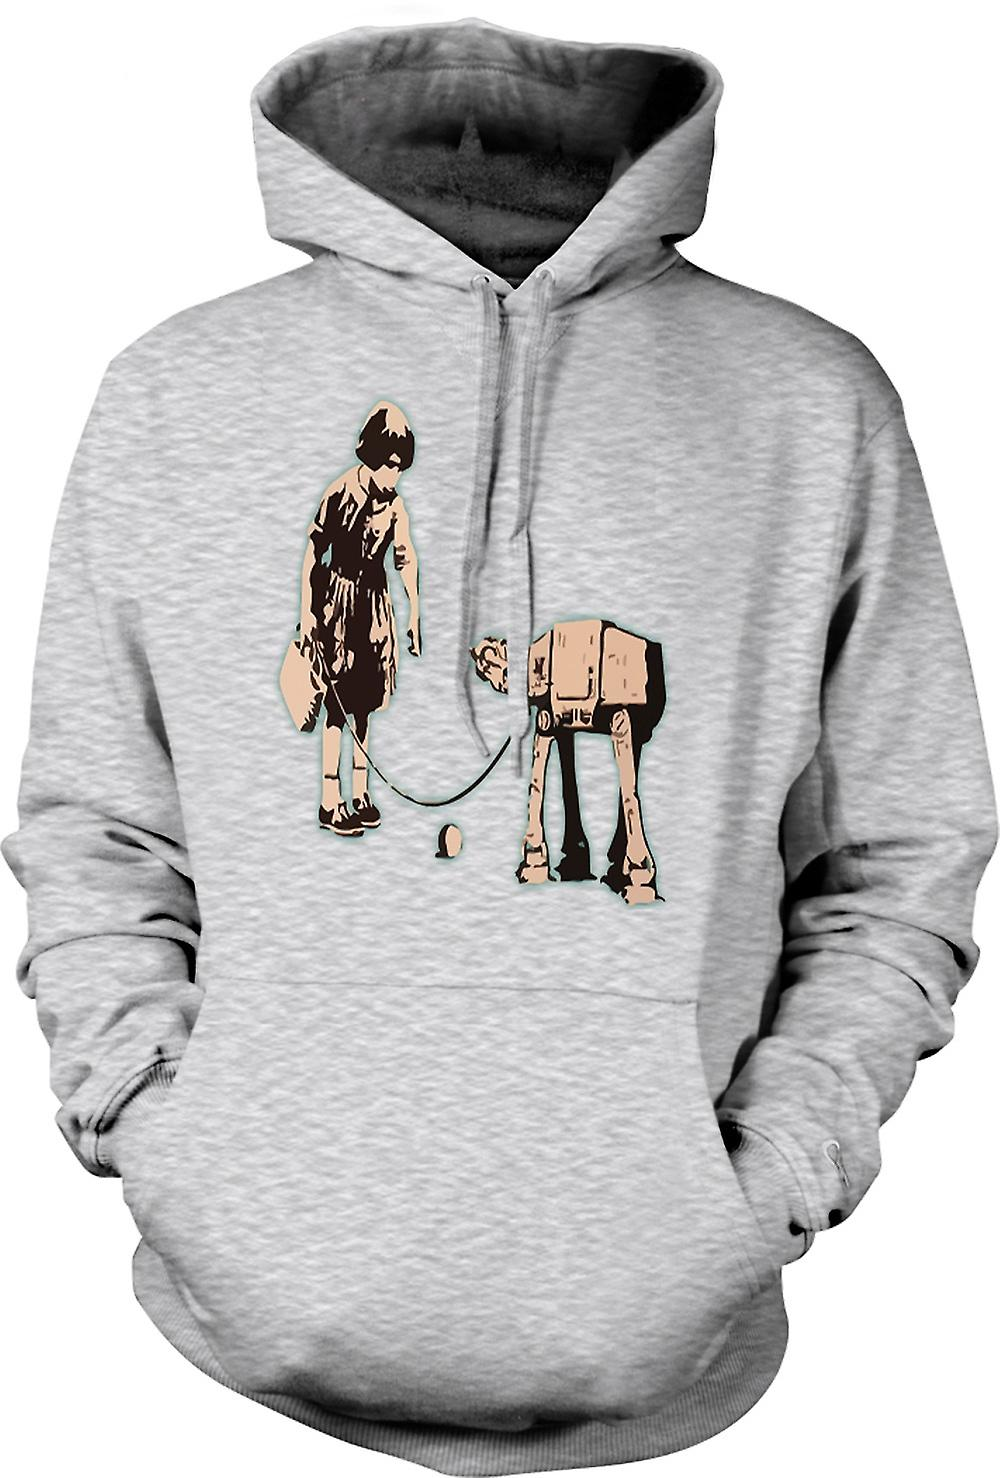 Mens Hoodie - Banksy Graffiti Art - Fetch